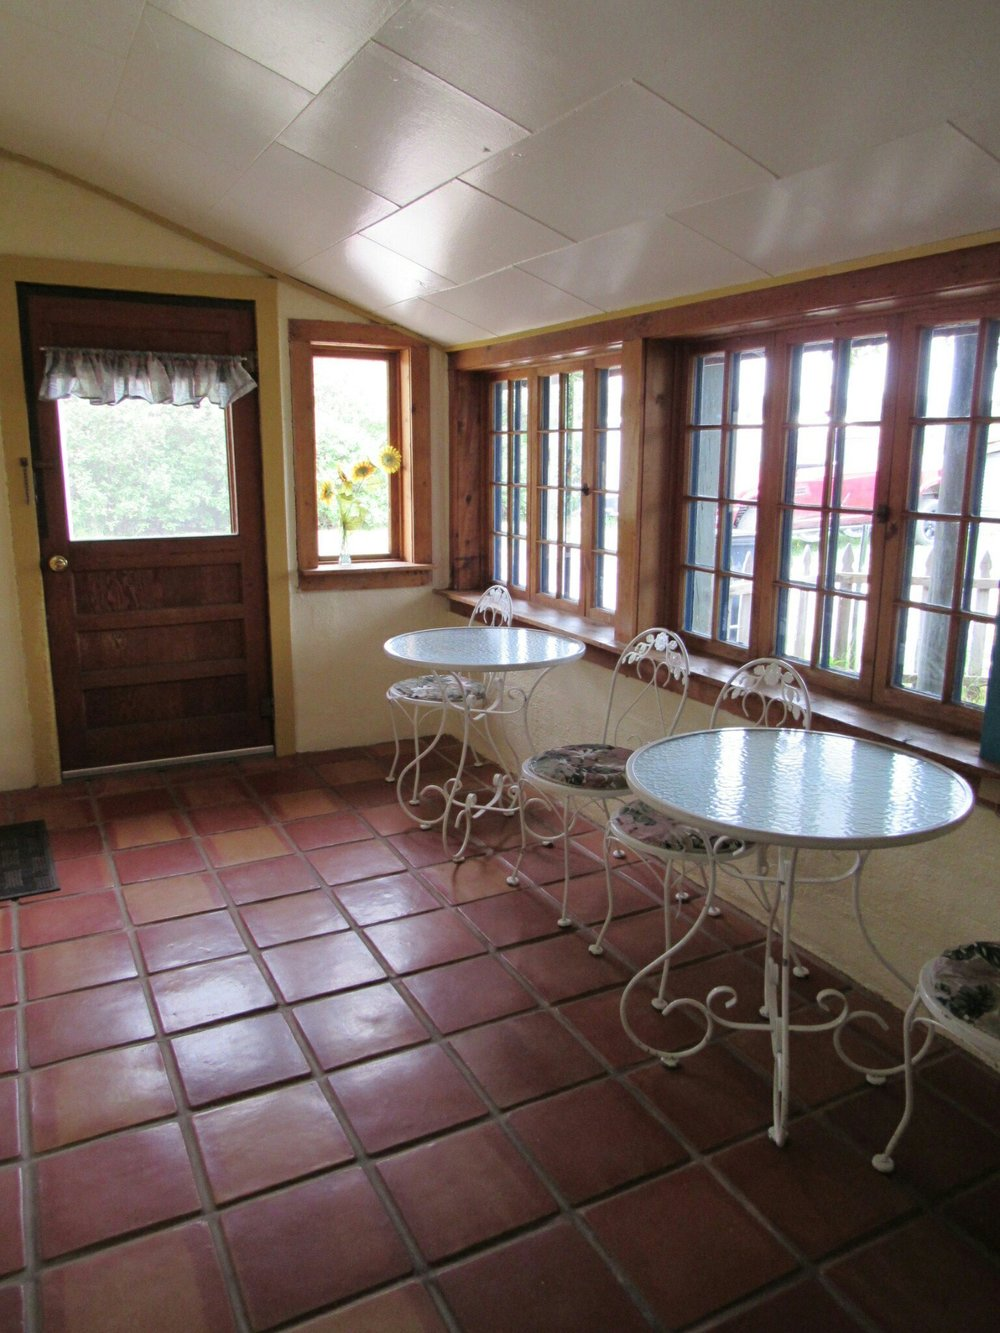 The Foyer to the Casita: A beautiful place for coffee in the morning or a game of cards in the evening.